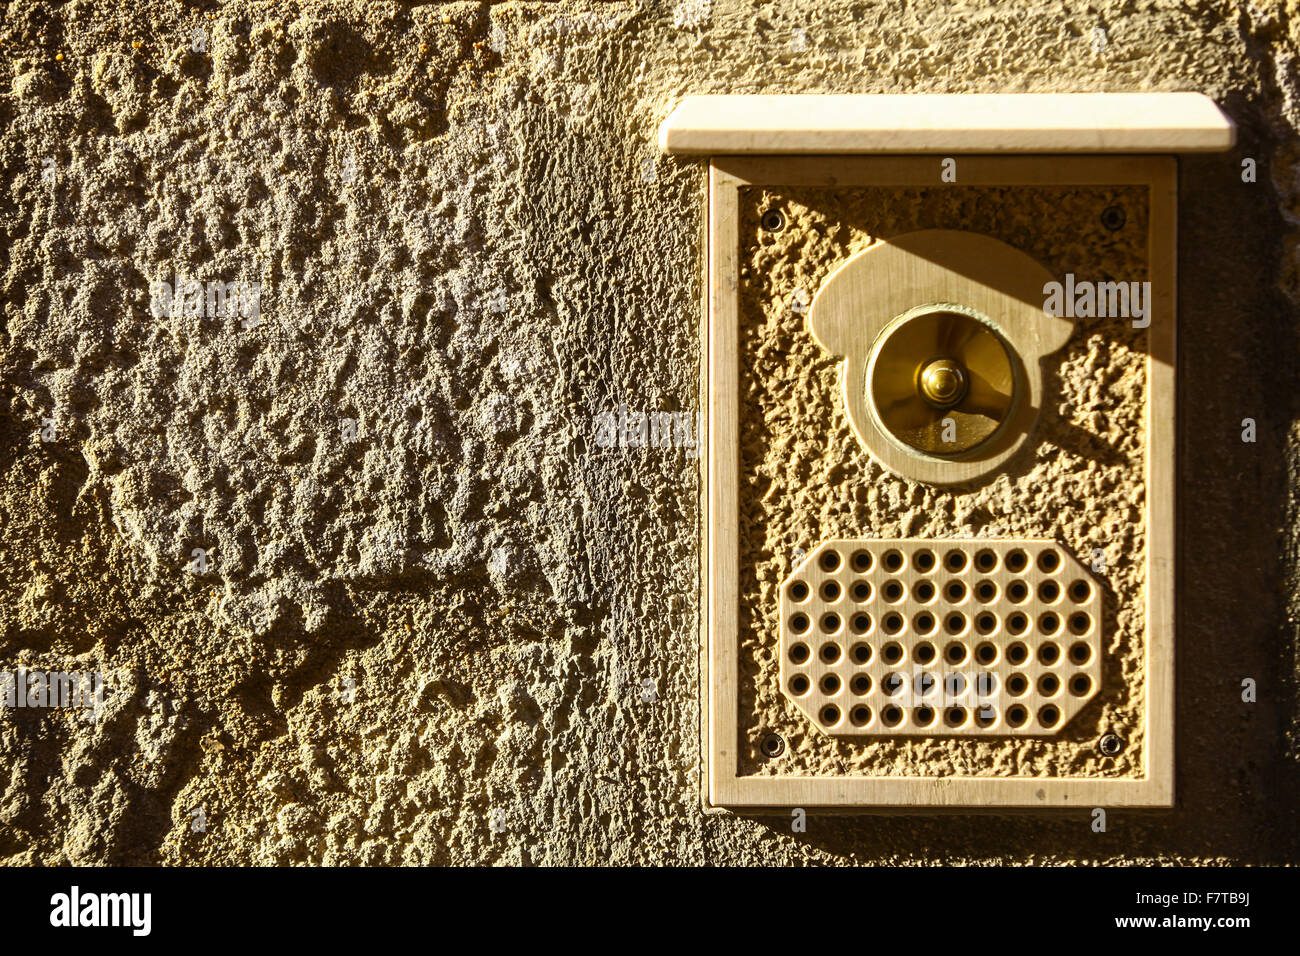 Color image of a vintage door bell. - Stock Image & Brass Door Ringer Stock Photos \u0026 Brass Door Ringer Stock Images - Alamy